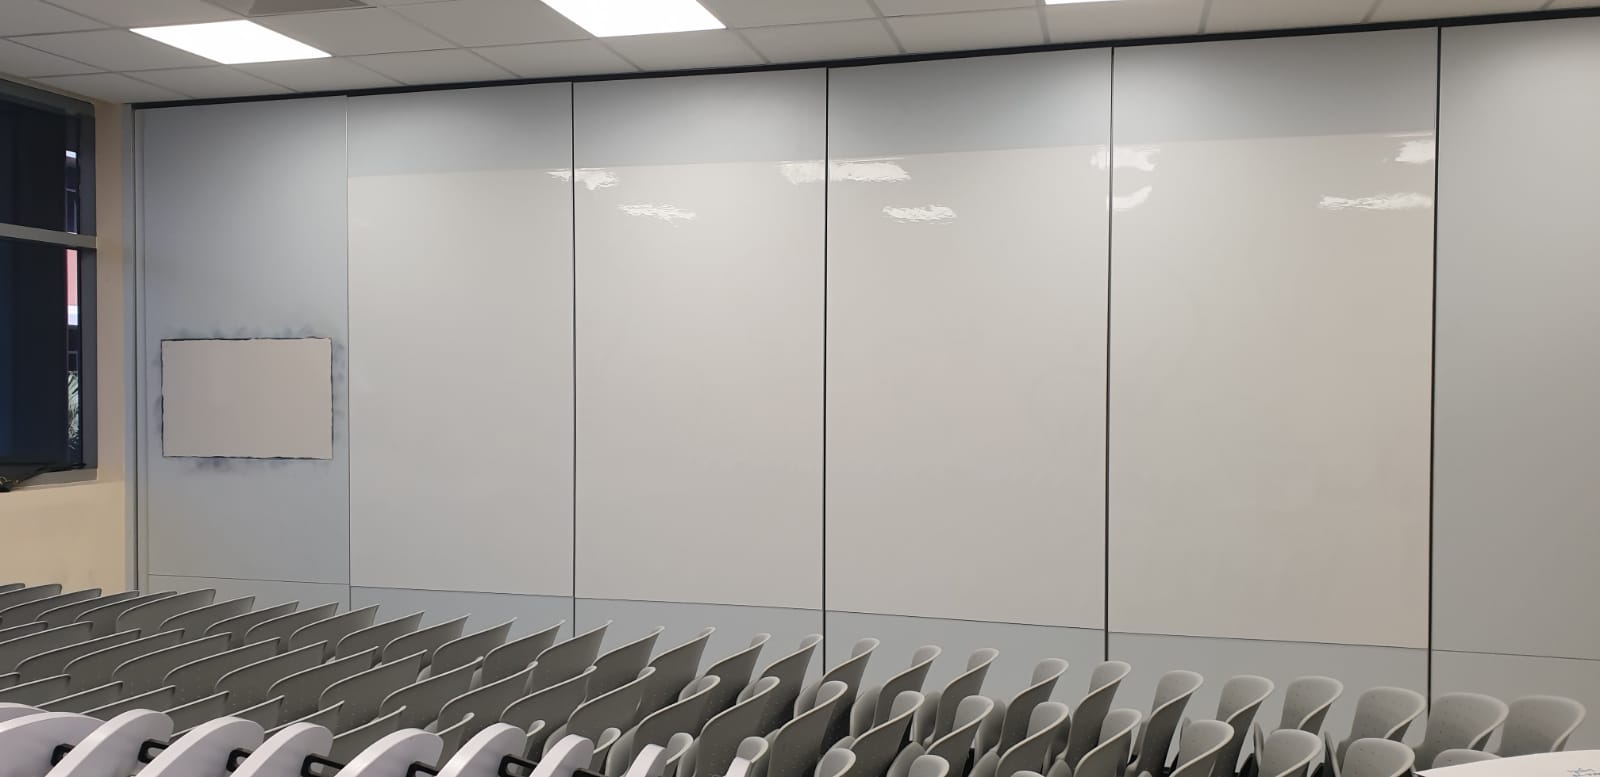 Magnetic whiteboard on hall partition walls